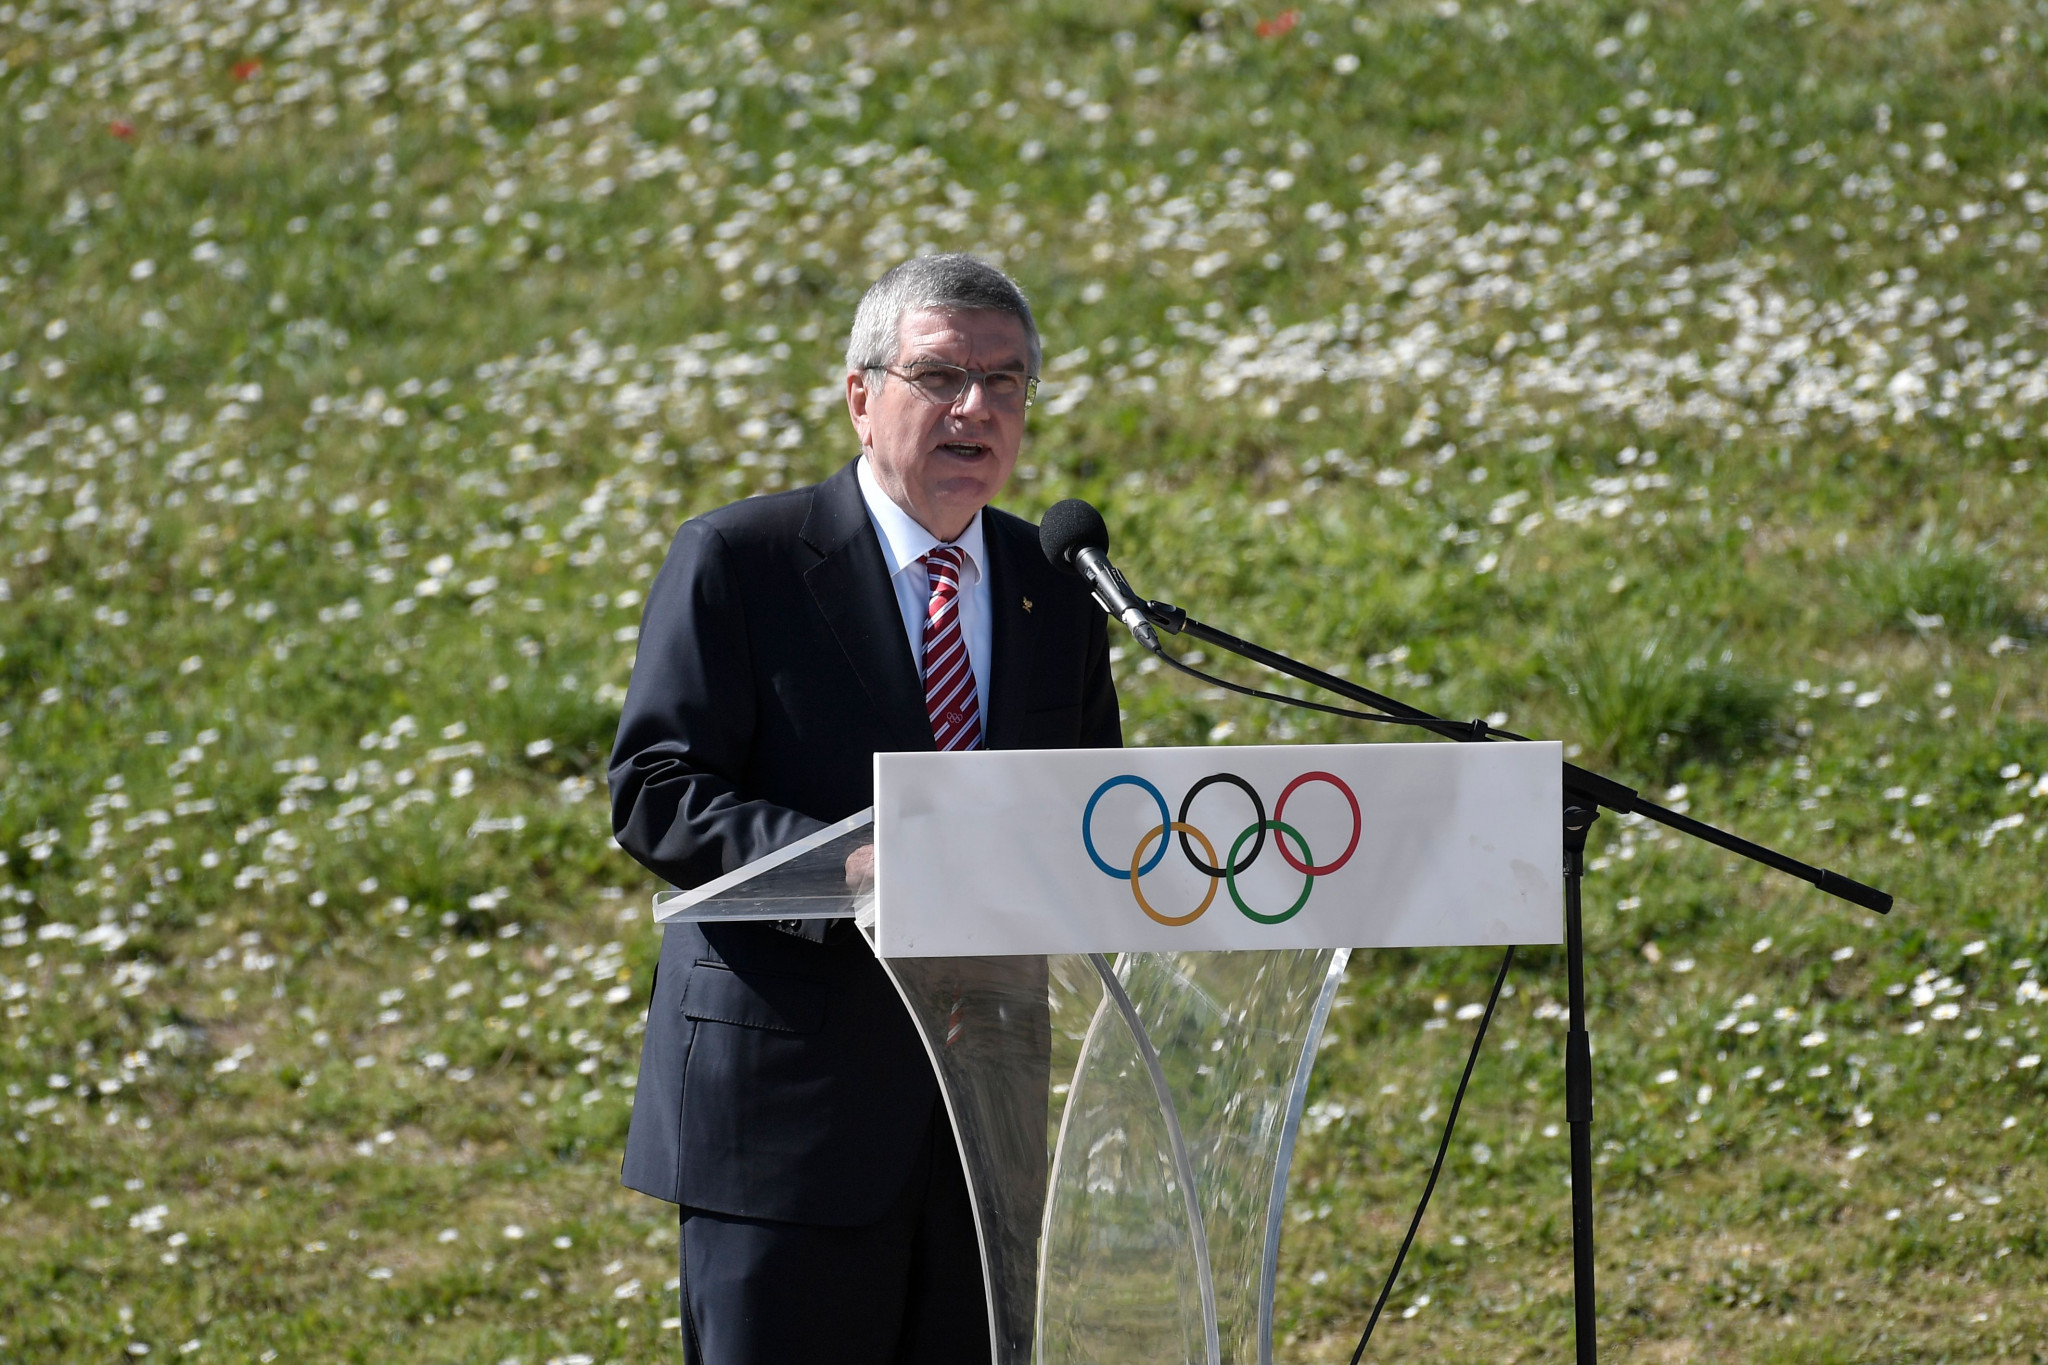 International Olympic Committee President Thomas Bach attended the scaled-back event ©Getty Images